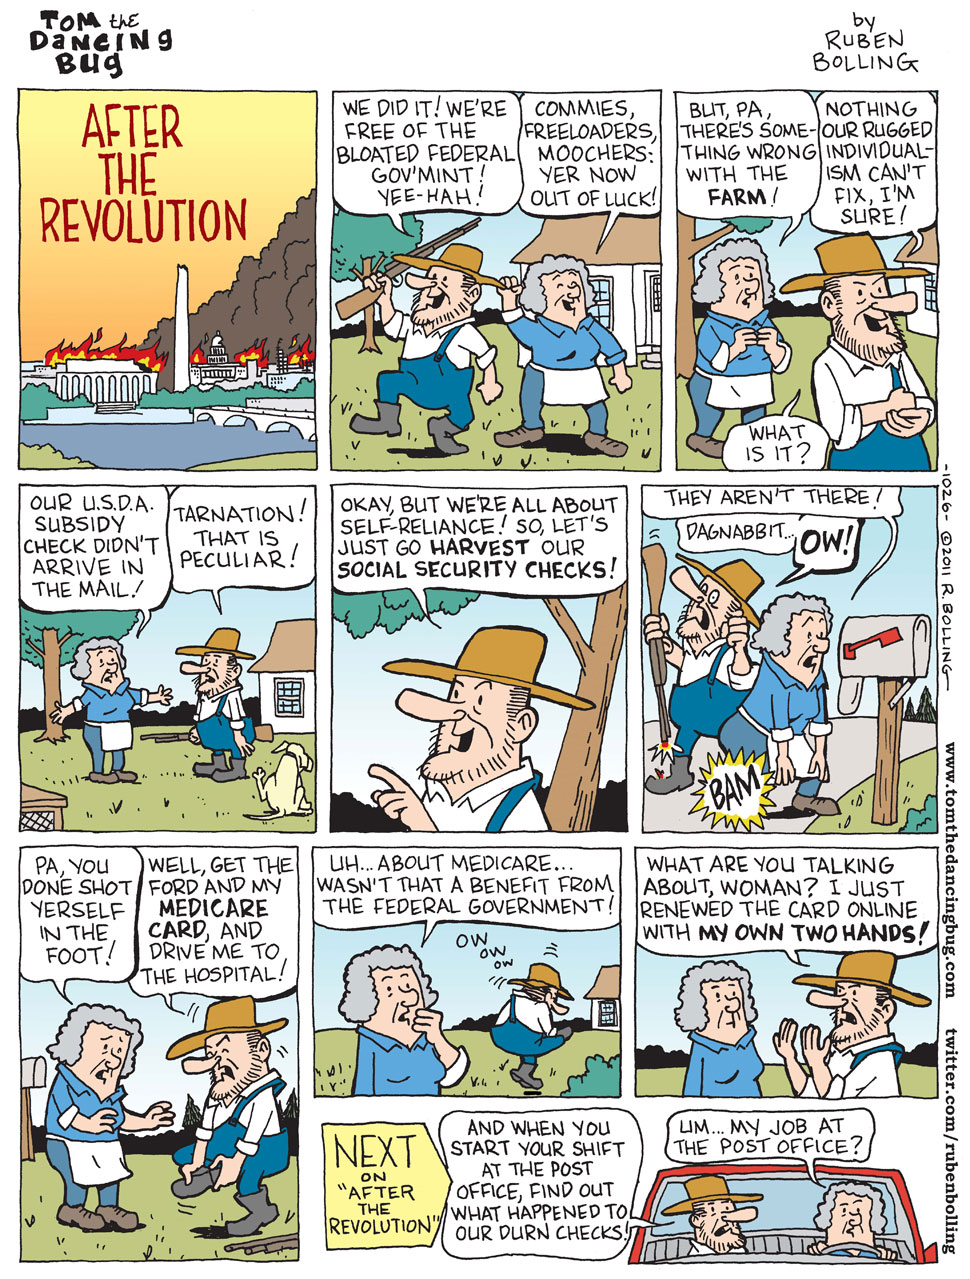 http://www.boingboing.net/images/1026cbc-after-the-revolution.jpg